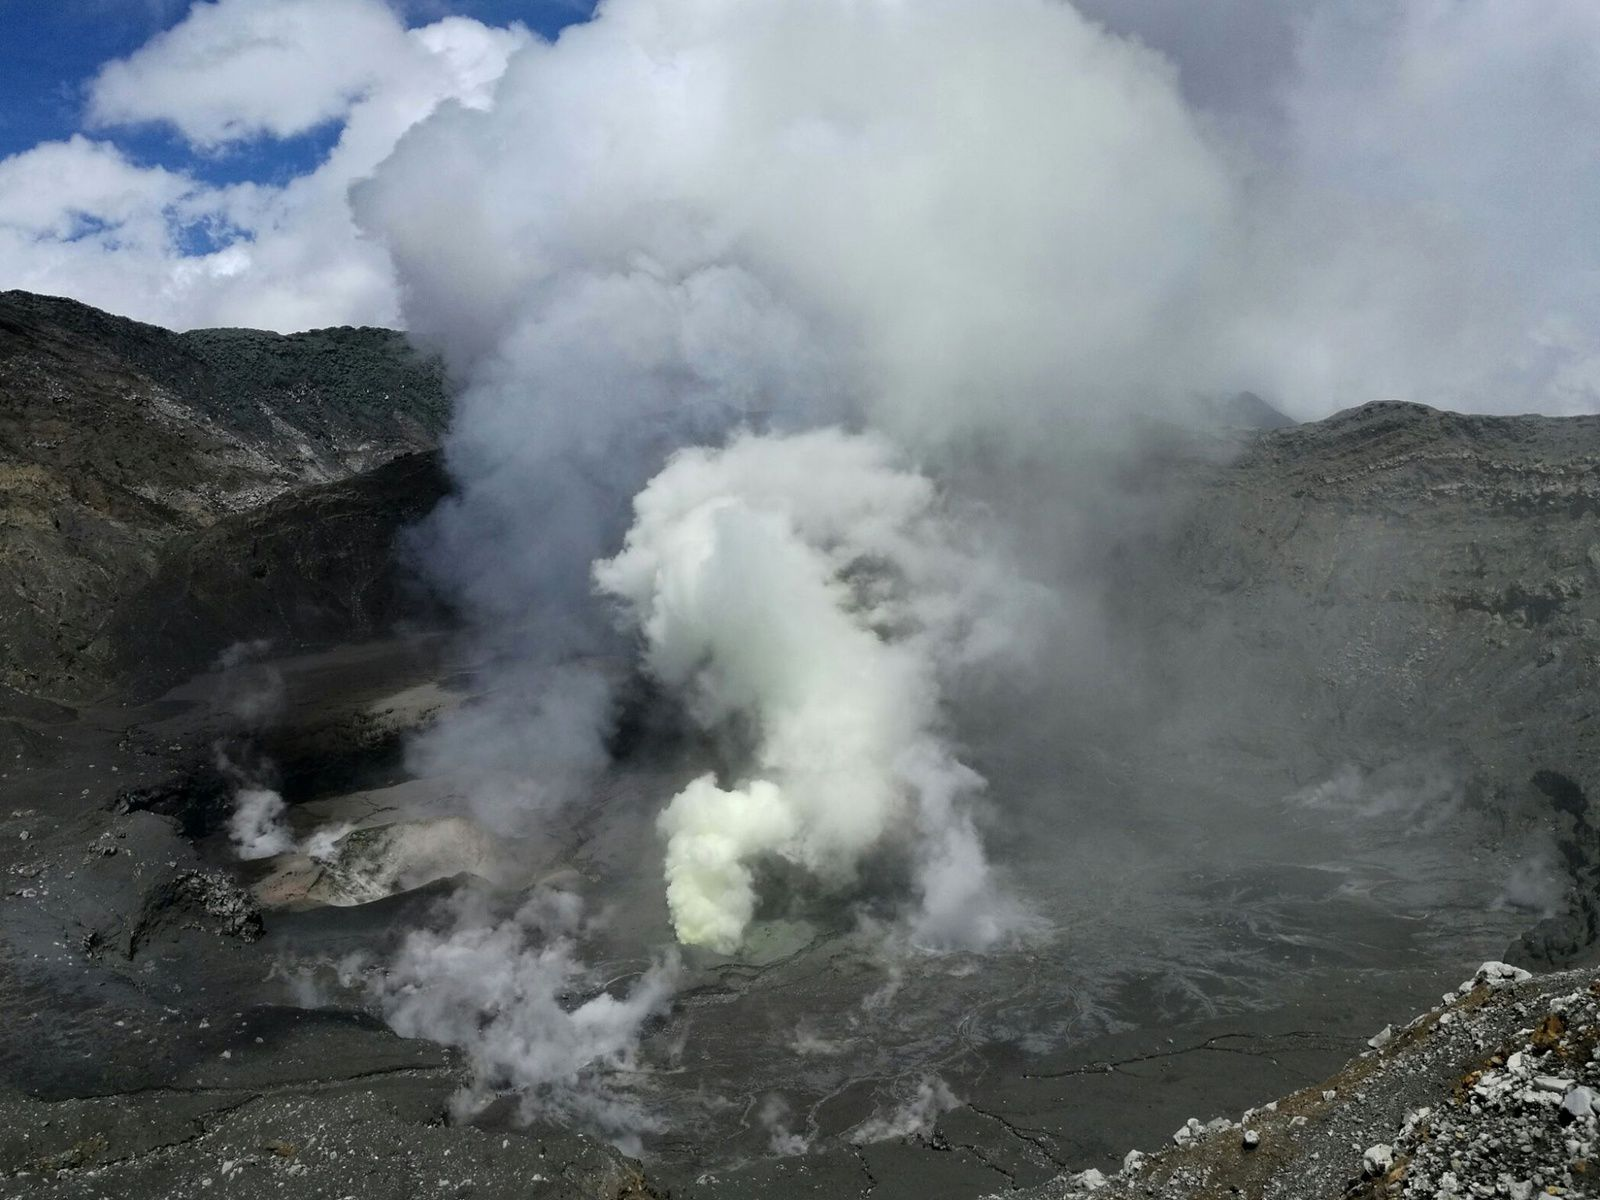 Poas - 06.07.2017 - degassing of two vents and fumaroles on the crater floor - photo Blas Enrique Sanchez via R.van der Laat